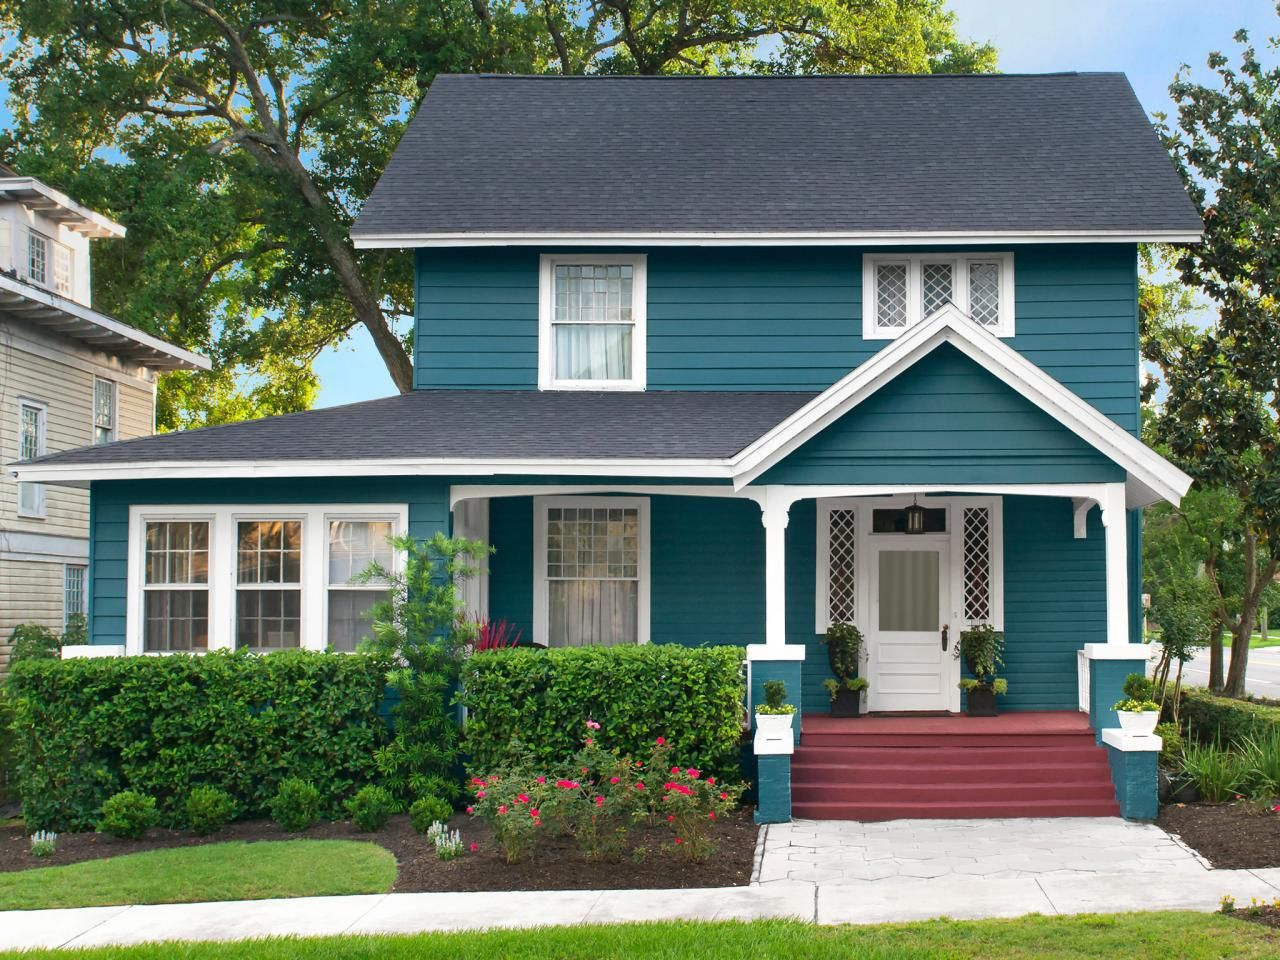 Curb appeal ideas from jacksonville florida renovation house paint exterior exterior house for Exterior house painting jacksonville fl